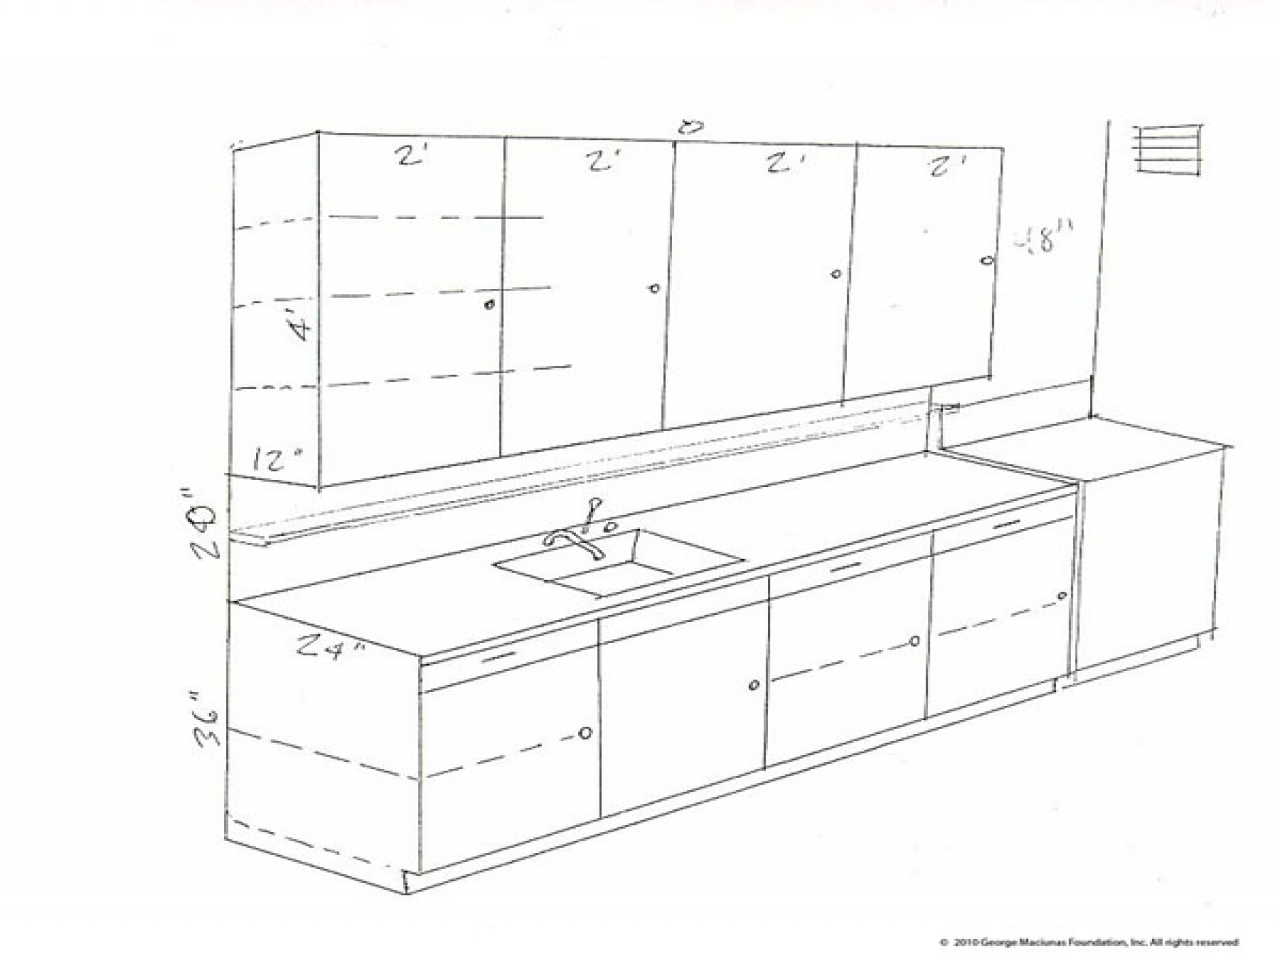 Best Kitchen Gallery: Kitchen Cabi S Drawing At Getdrawings Free For Personal Use of Drawing Kitchen Cabinets on rachelxblog.com